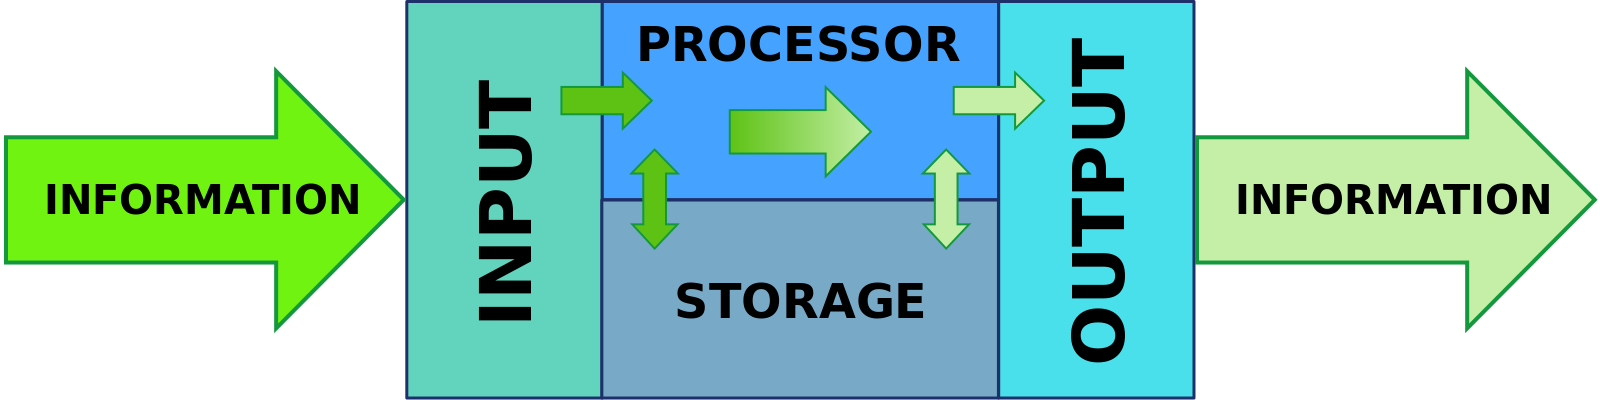 Information processing system